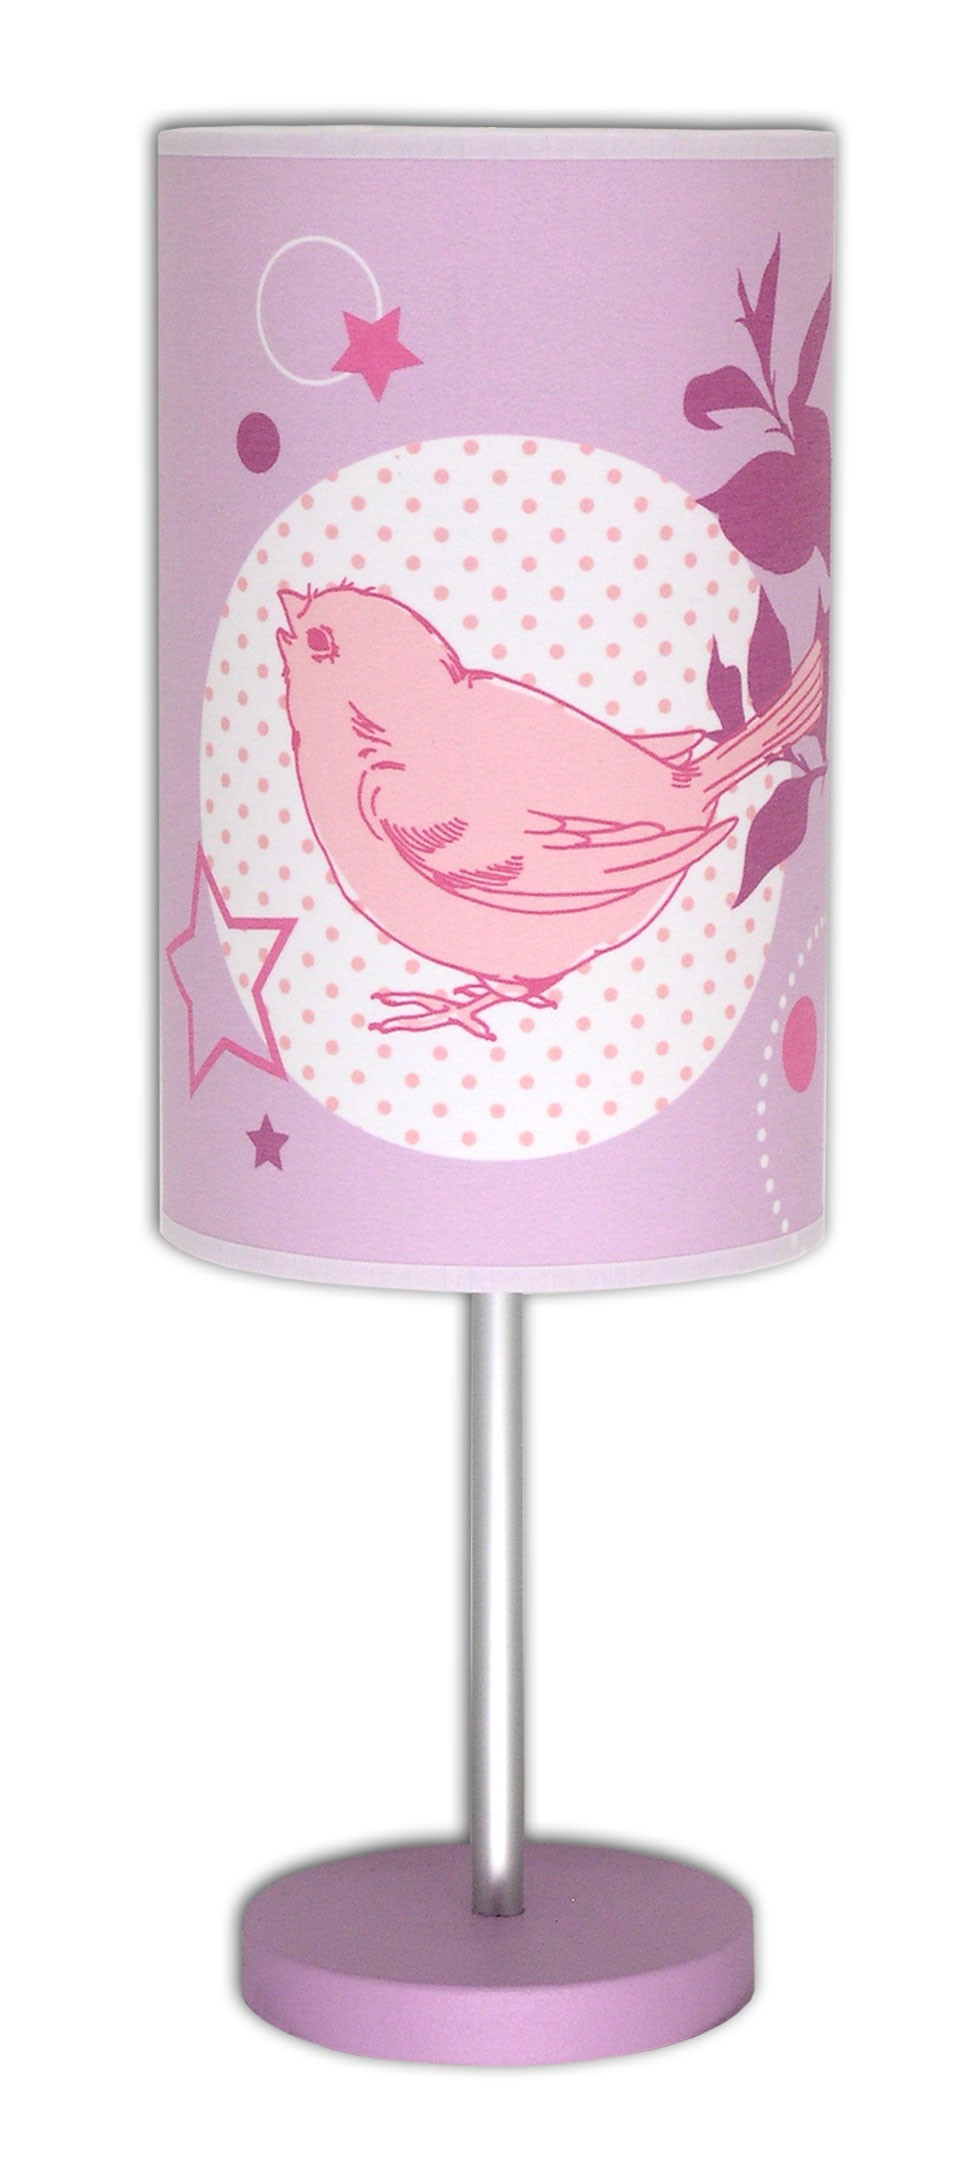 Lampe décorative enfant lovely bird